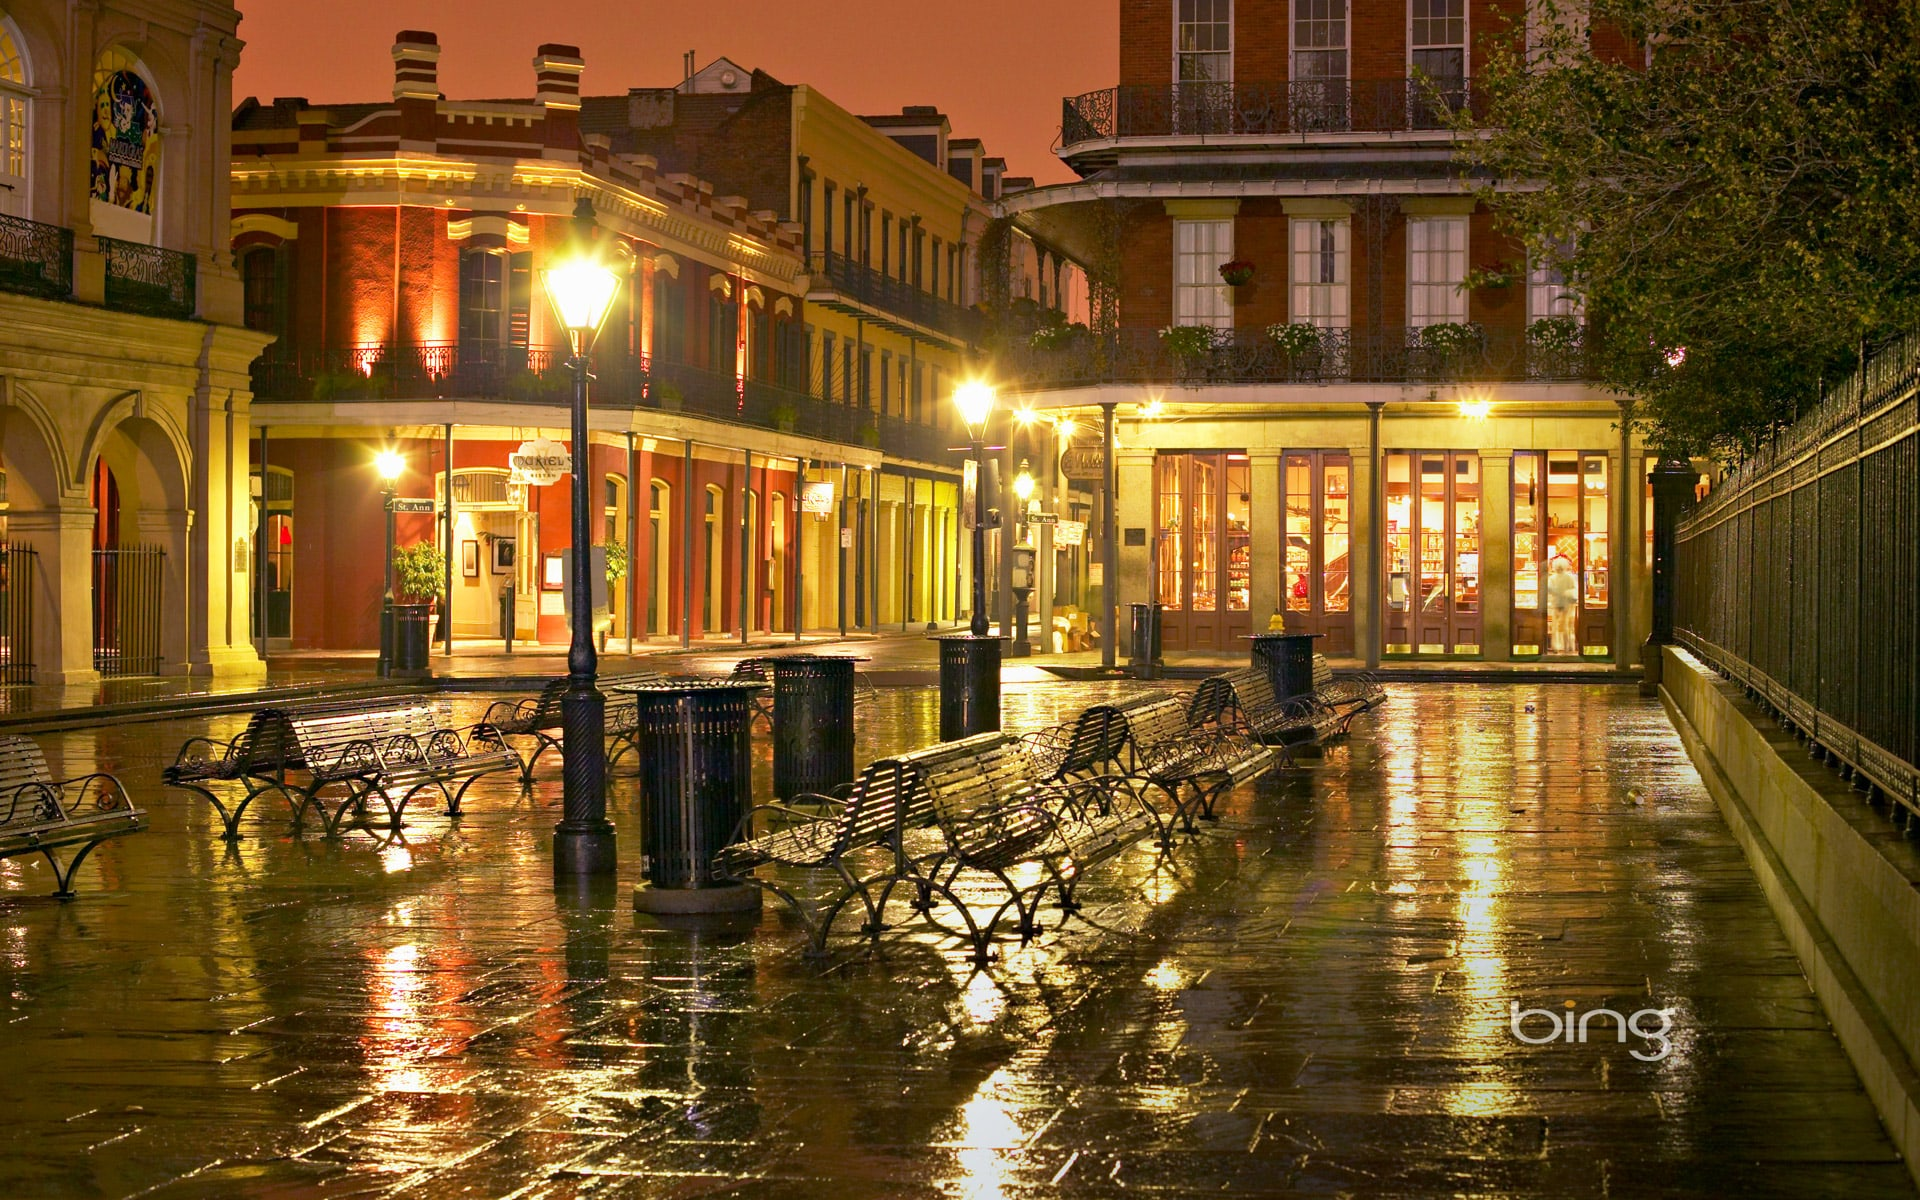 Popular Screensavers And Wallpaper 47 Images: New Orleans Screensavers And Wallpaper (45 Images